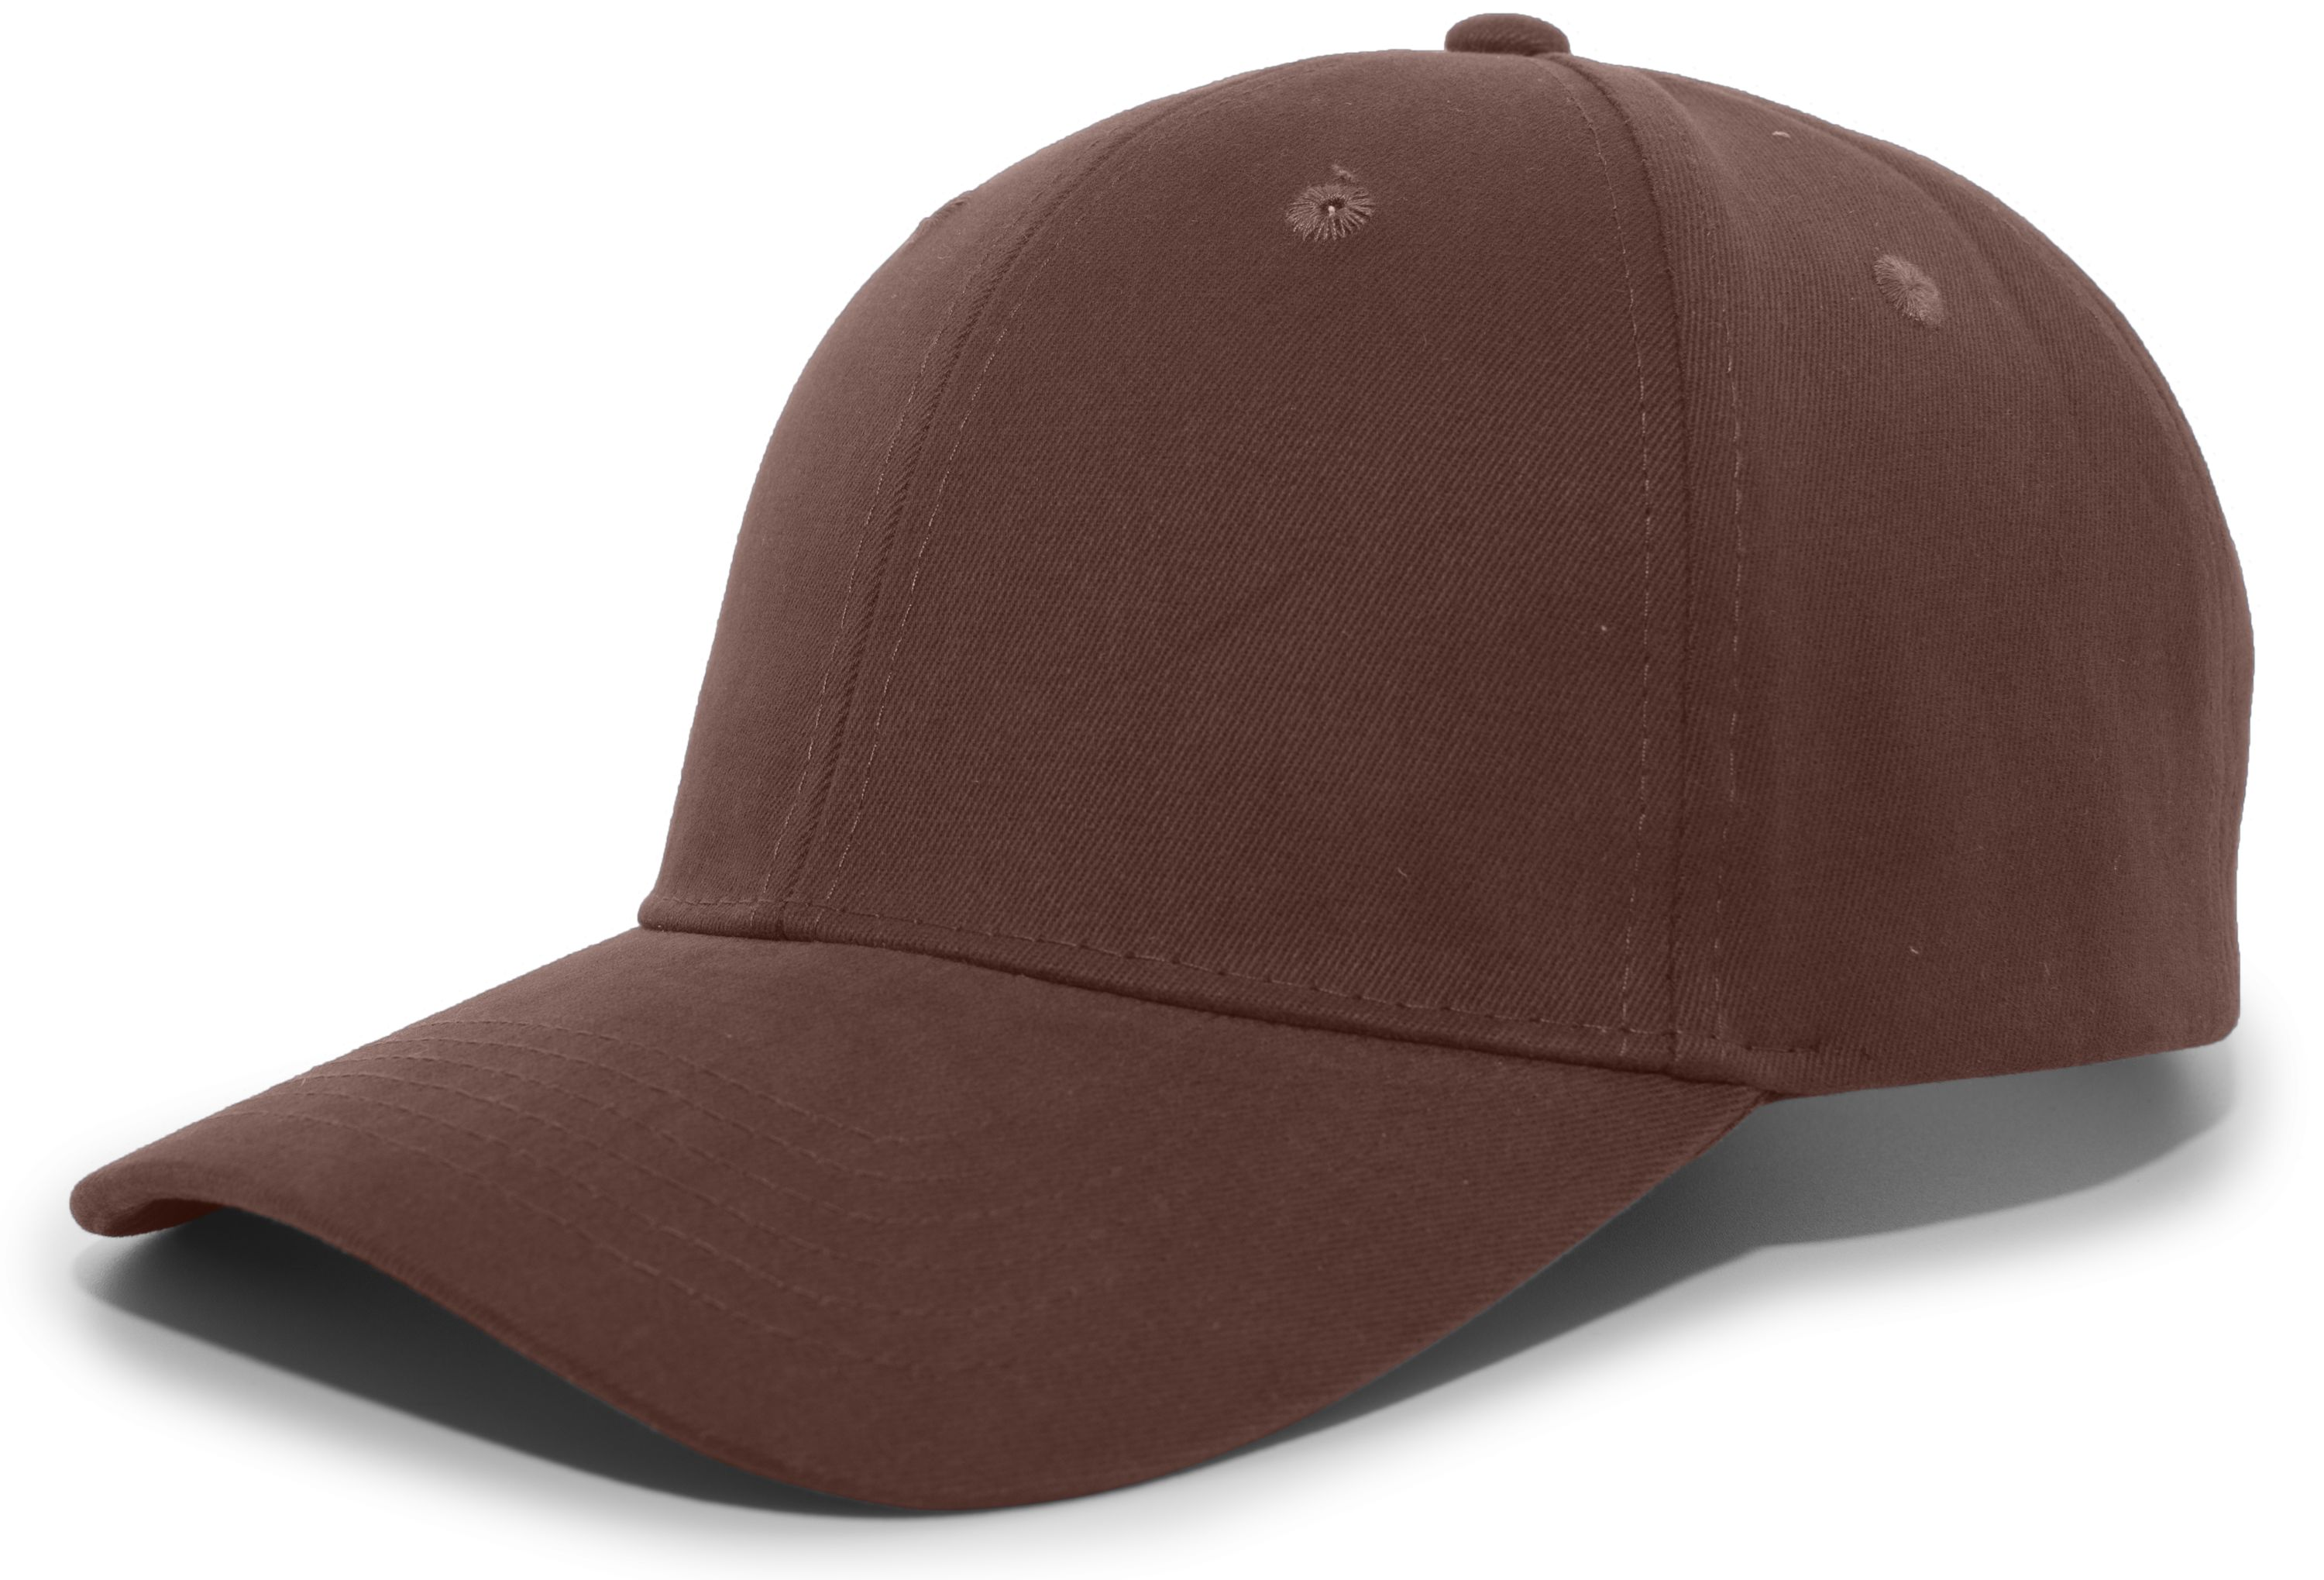 Brushed Cotton Twill Hook-And-Loop Adjustable Cap - BROWN